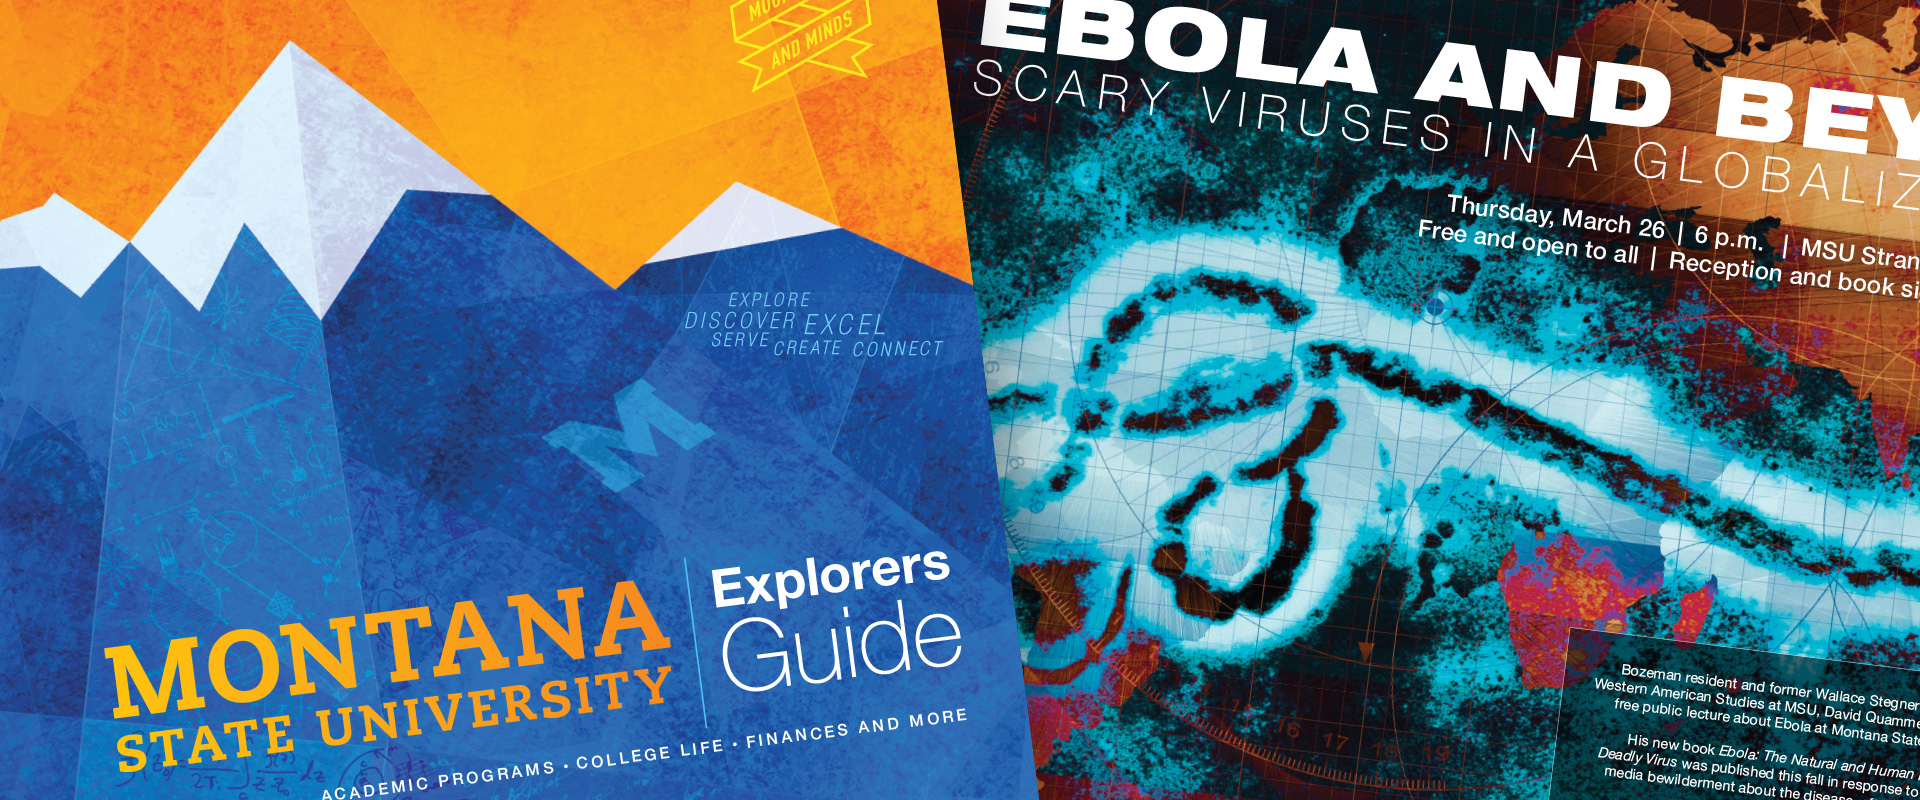 msu creative services samples 2015 viewbook ebola lecture poster